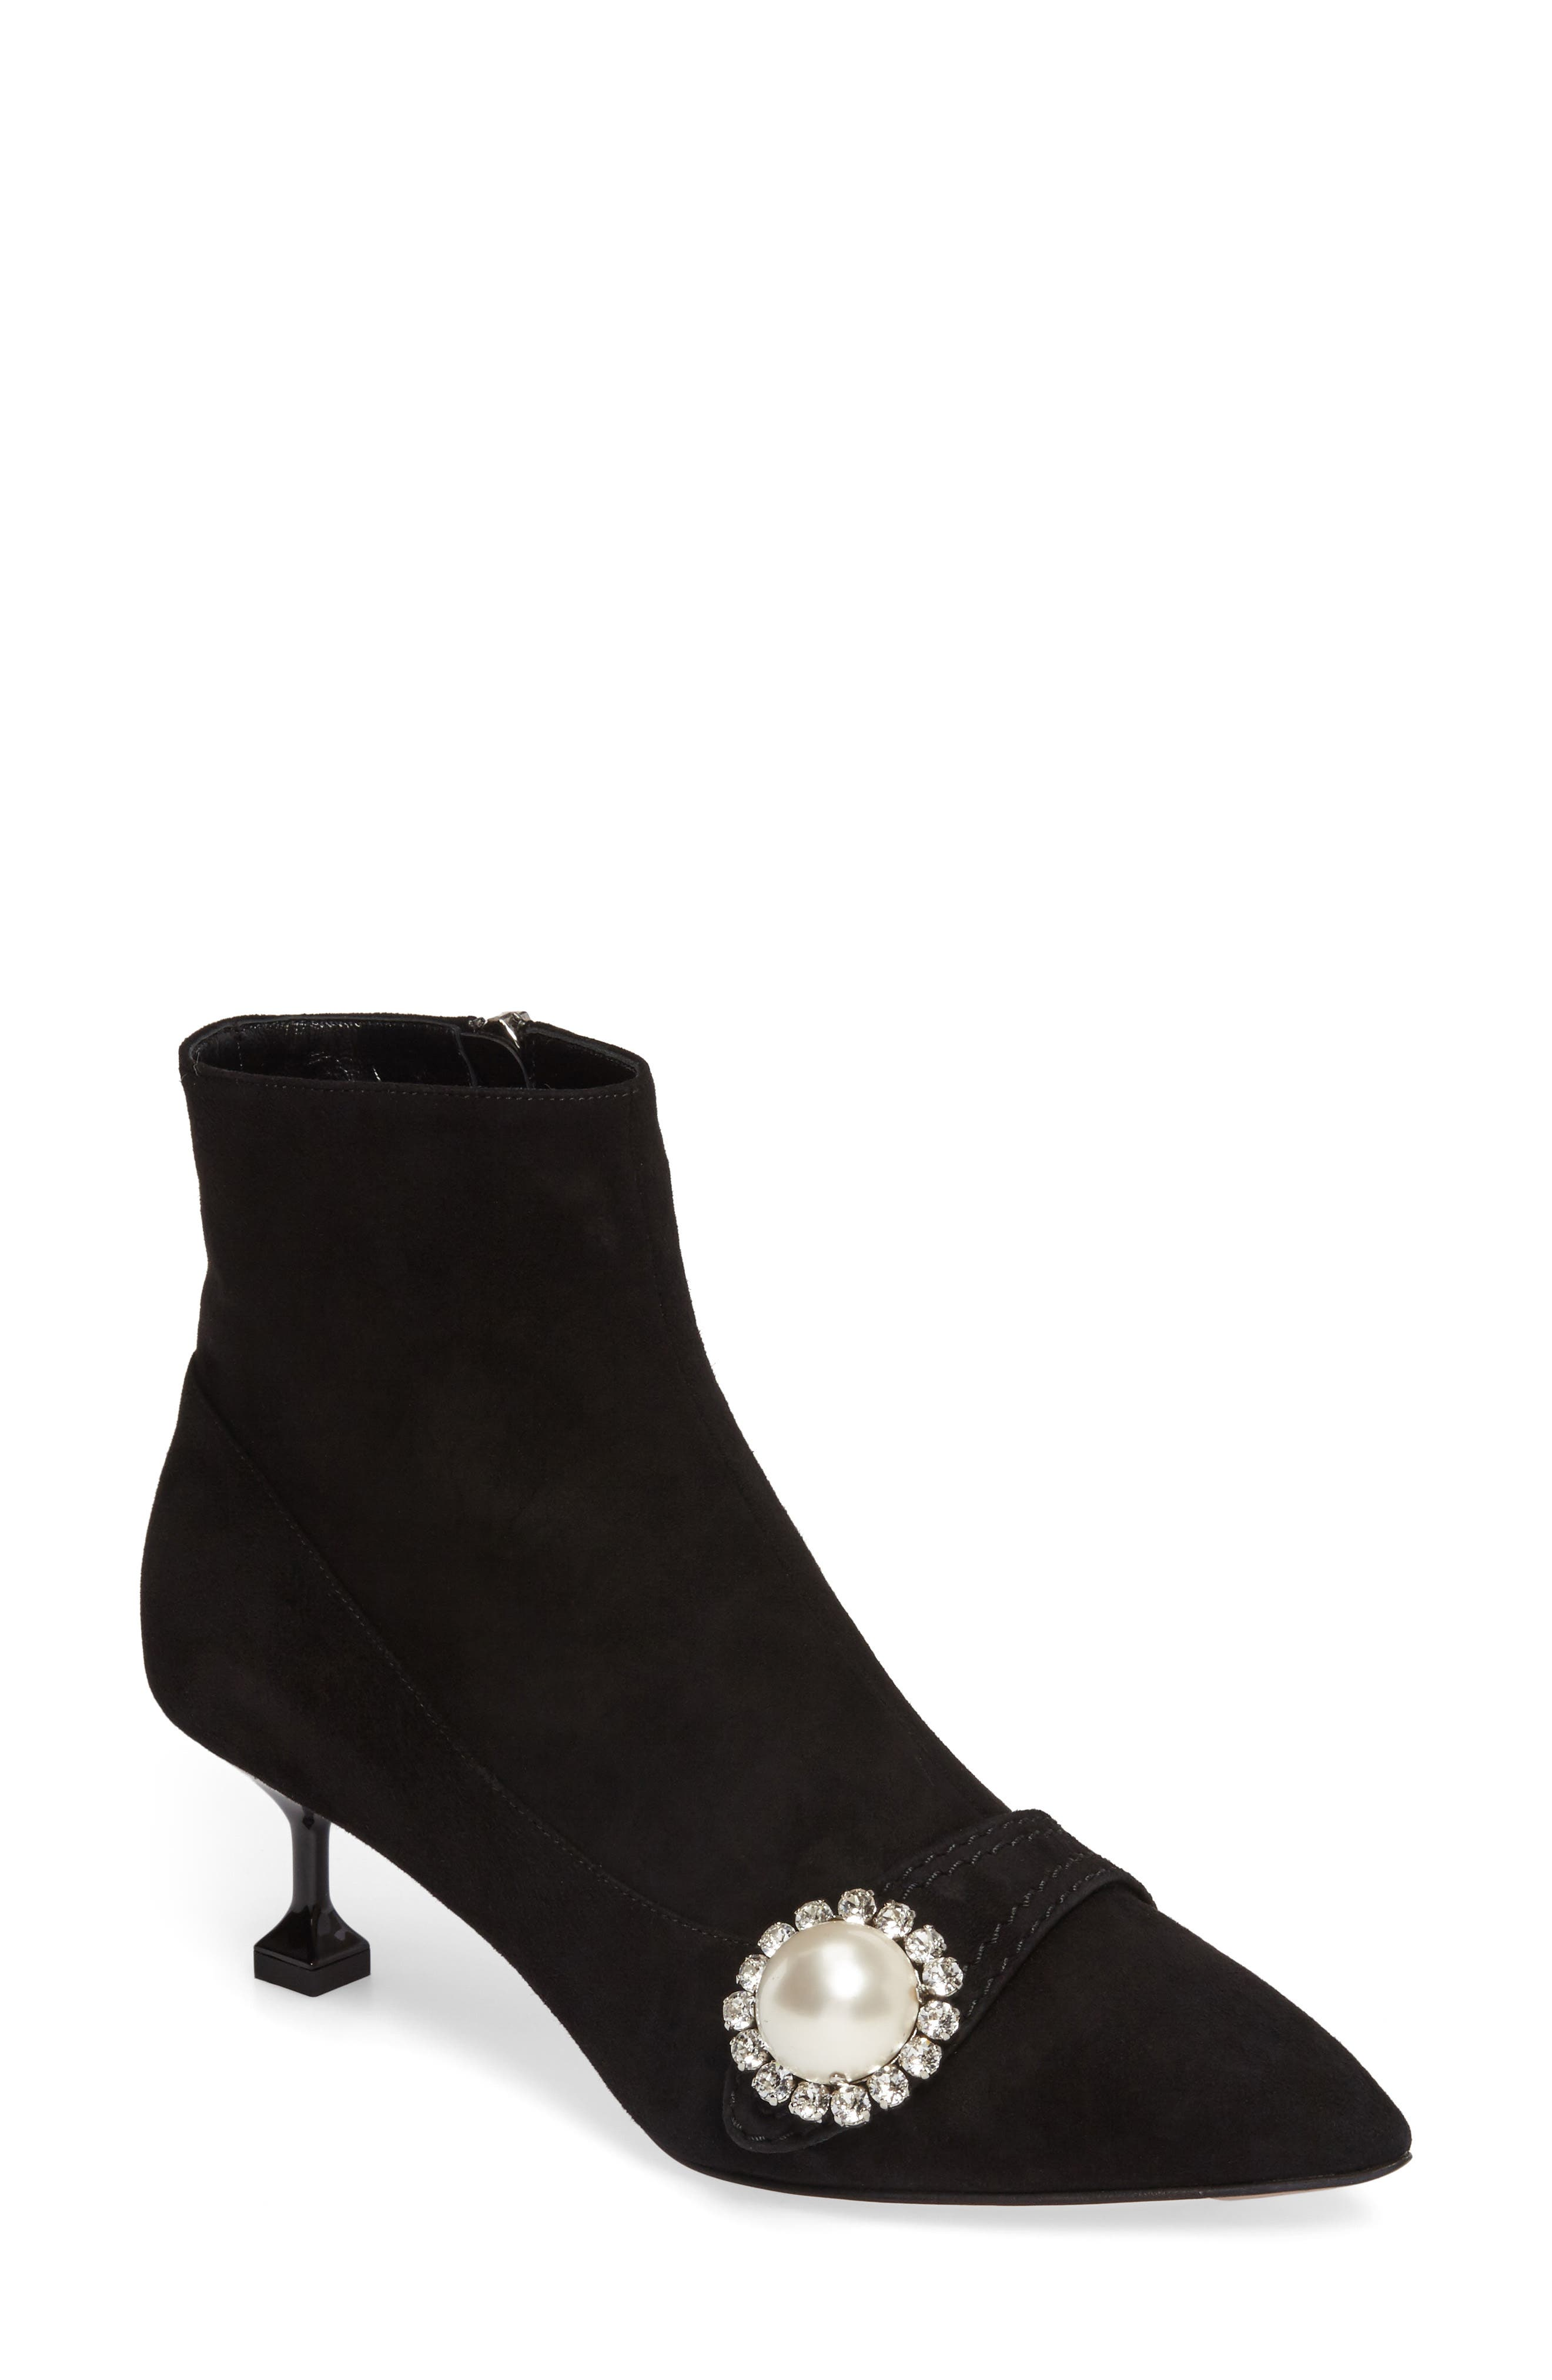 Main Image - Miu Miu Embellished Pointy Toe Bootie (Women)